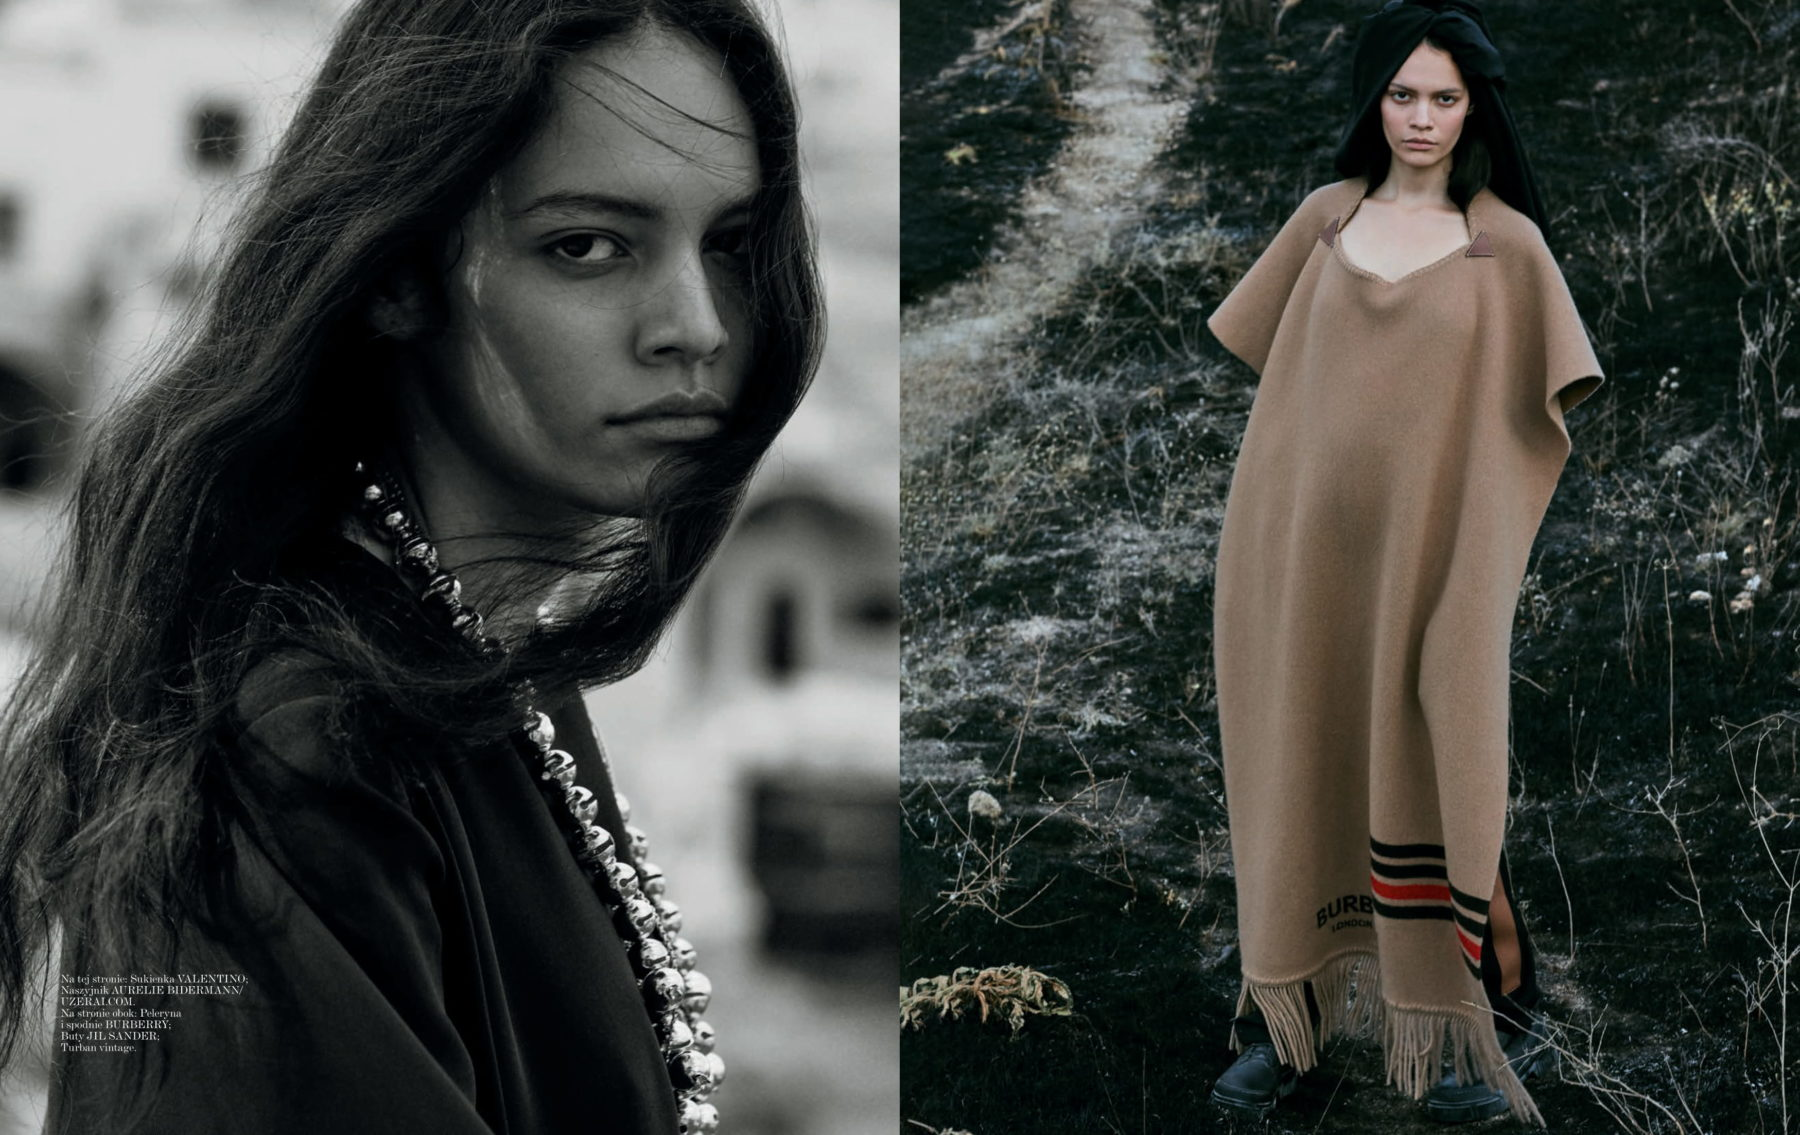 Editorial for Vogue Poland with makeup by Kama Jankowska